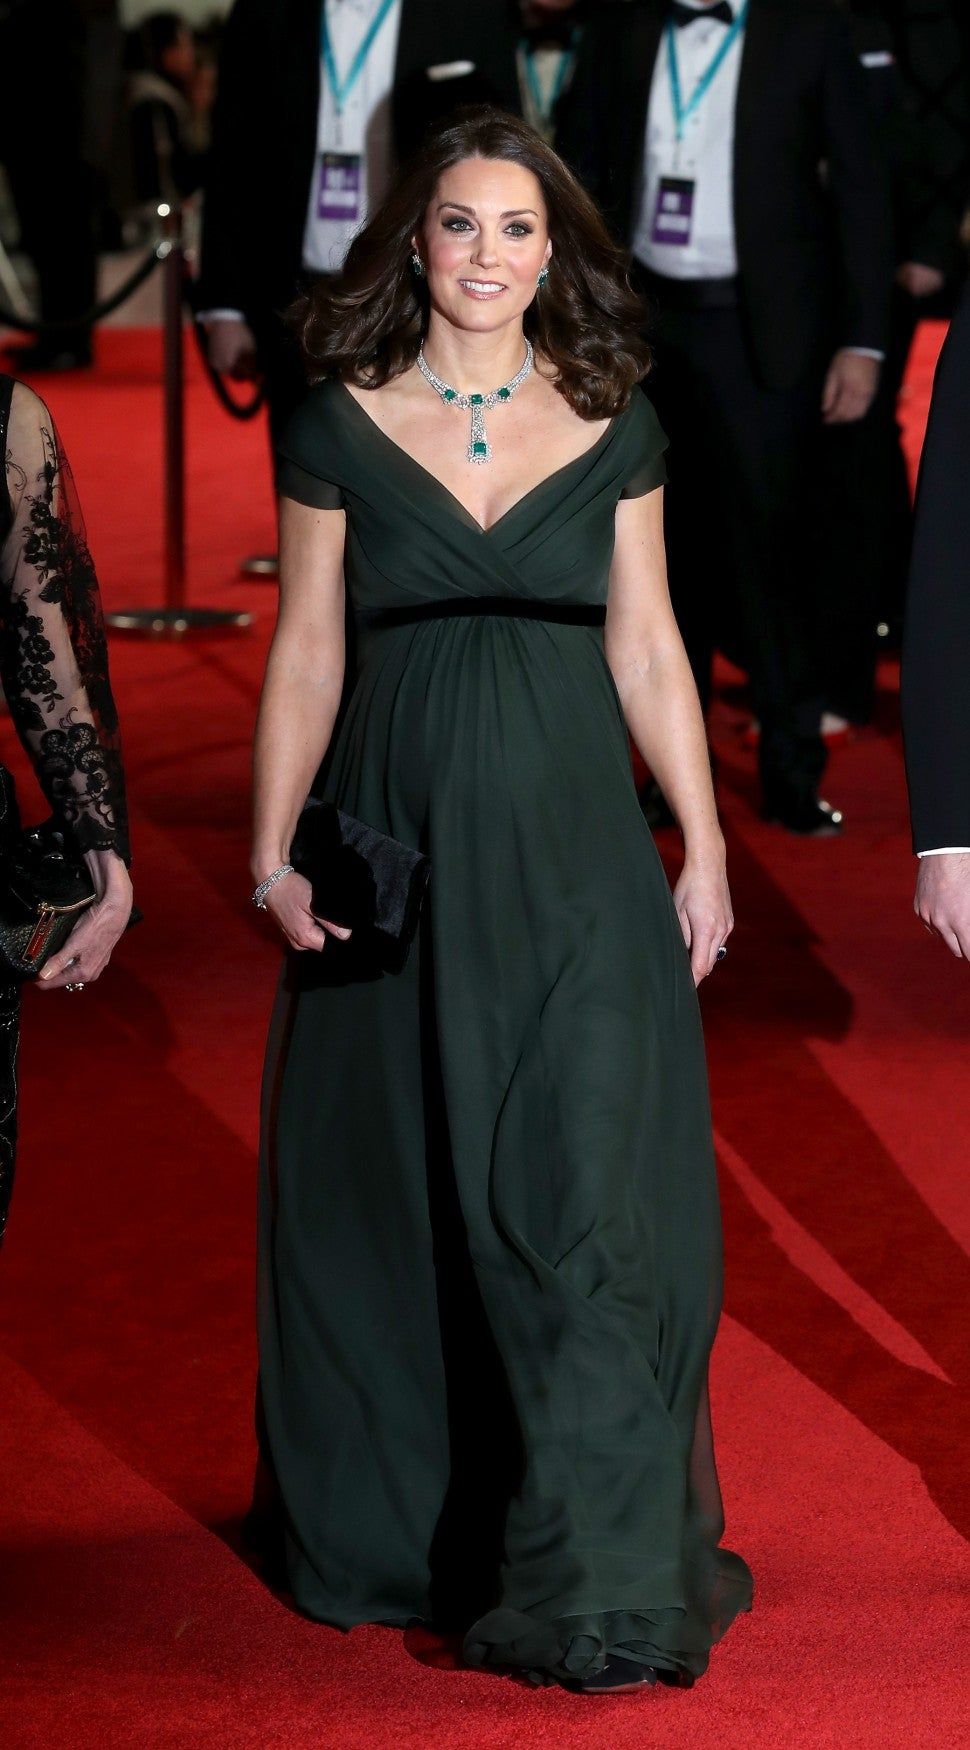 Kate Middleton at 2018 BAFTAs